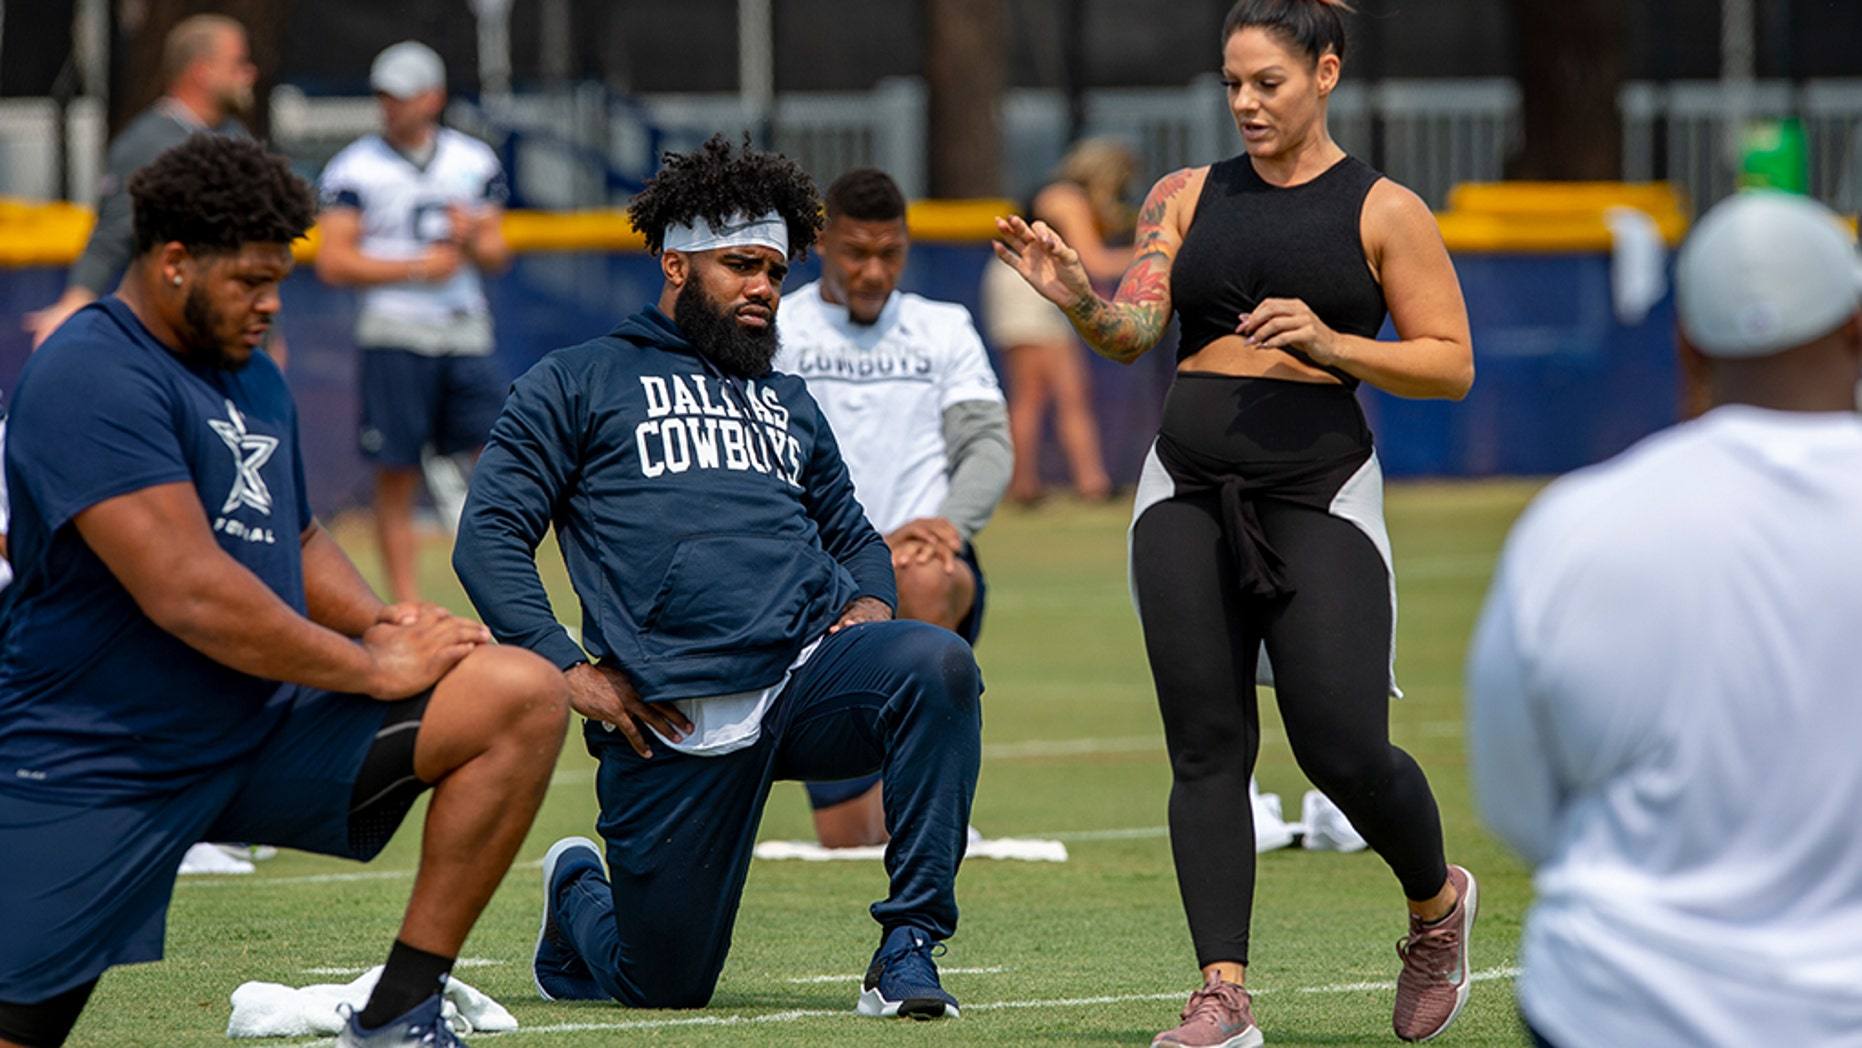 FILE - In this July 28, 2018, file photo, Dallas Cowboys offensive tackle La'el Collins, left and running back Ezekiel Elliott, center, listen to yoga instructor Stacey Hickman, right, as the team does some flexibility exercises at NFL football training camp in Oxnard, Calif. (AP Photo/Gus Ruelas, File)